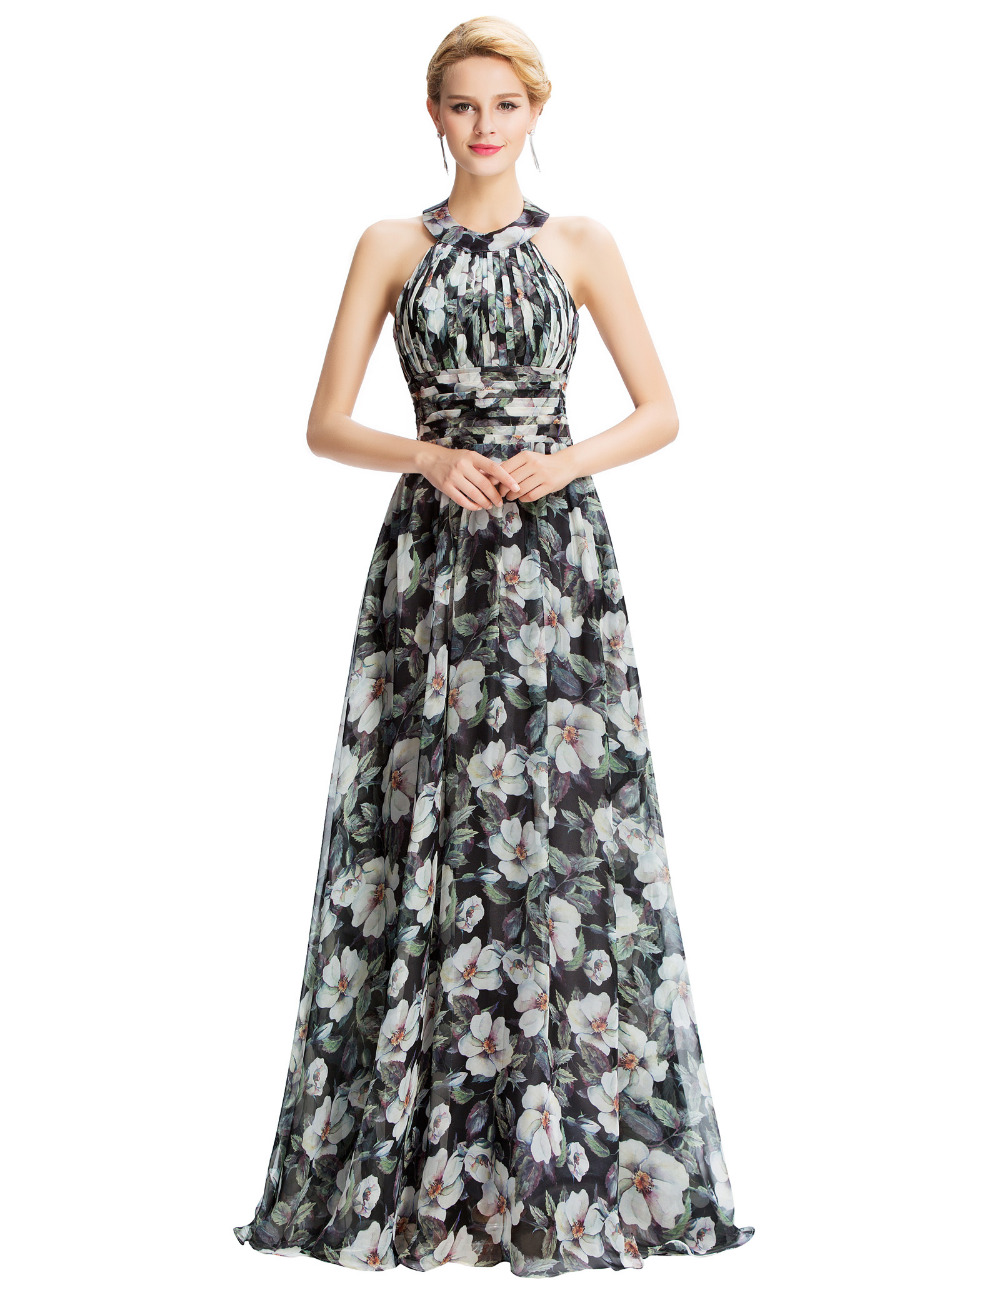 Halter Neck Black Fl Print Flowers Chiffon Evening Dresses Formal Party Gowns Long Prom Dress Celebrity